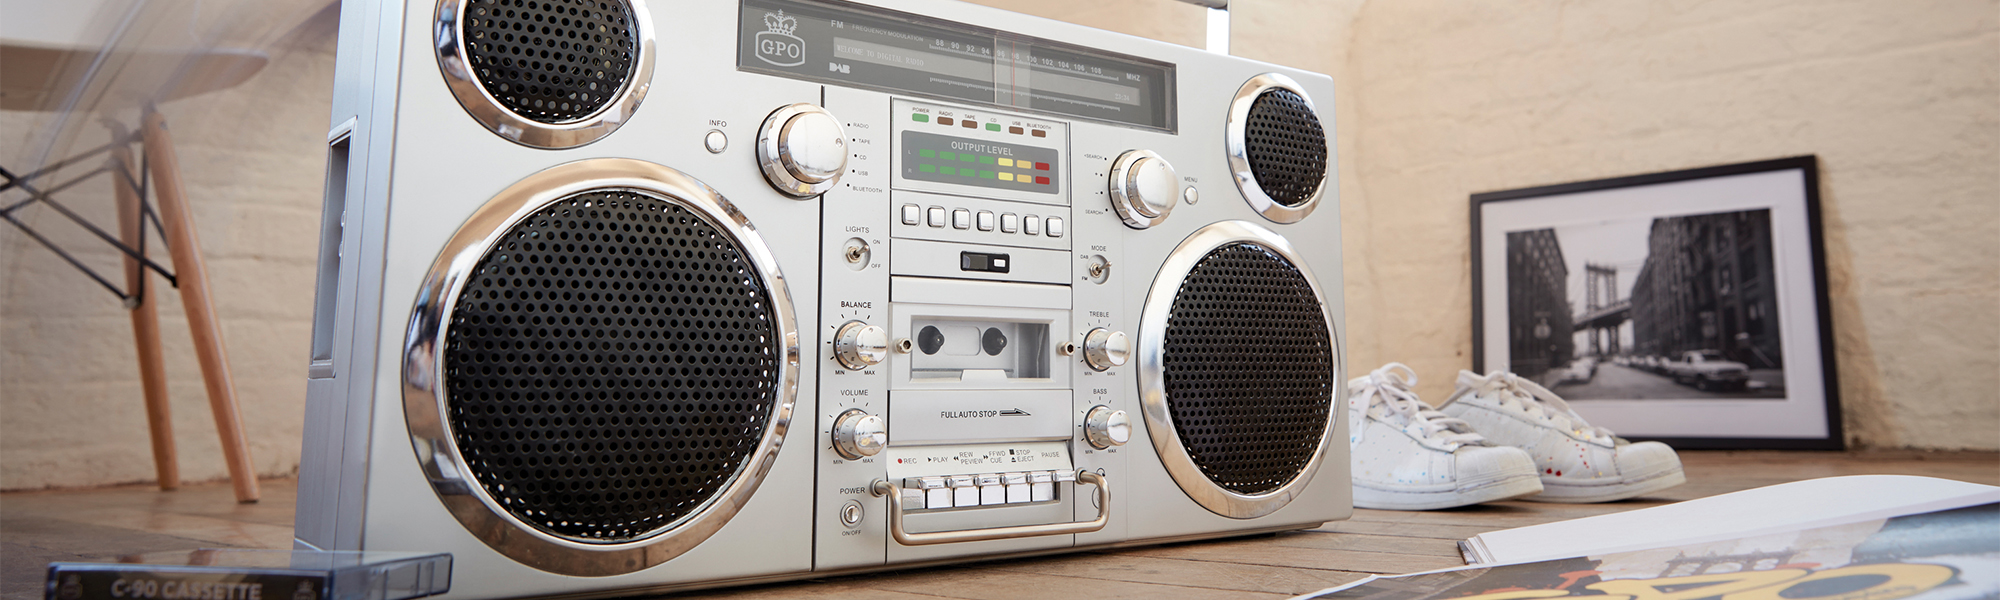 Retro Boombox Bluetooth | Boombox Stereo | Vintage Stereo system